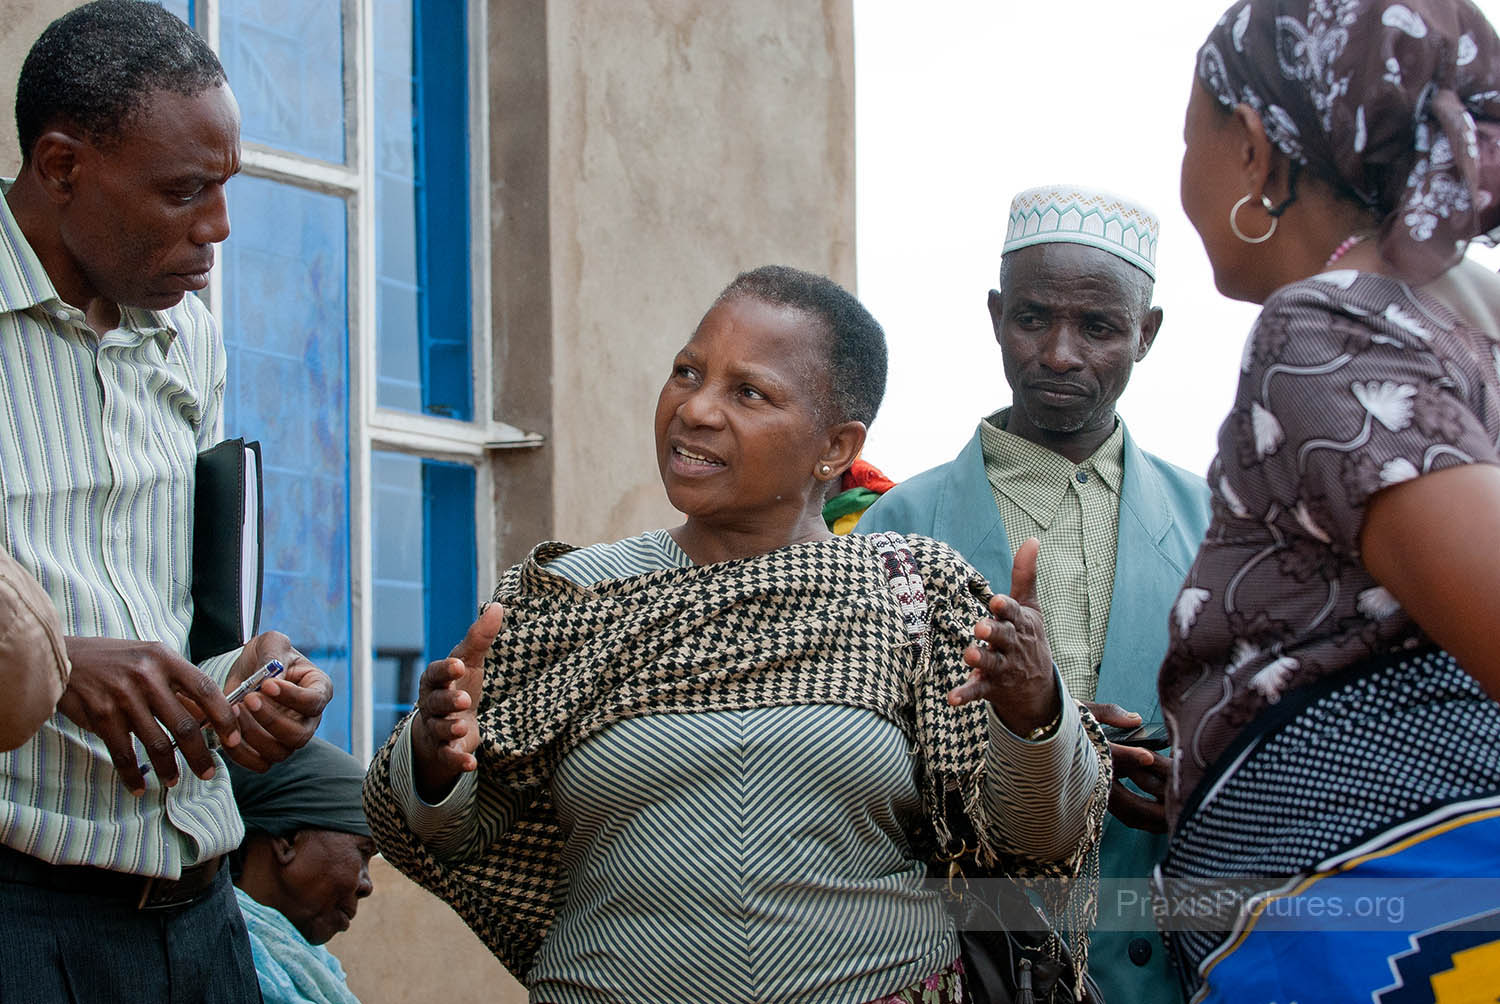 ELIZABETH - Elizabeth is a VICOBA facilitator in Arusha, who helps new VICOBA groups get started. VICOBA is structured in such a way that people are organized in groups and trained in various skills to build up their capacity to provide for themselves.